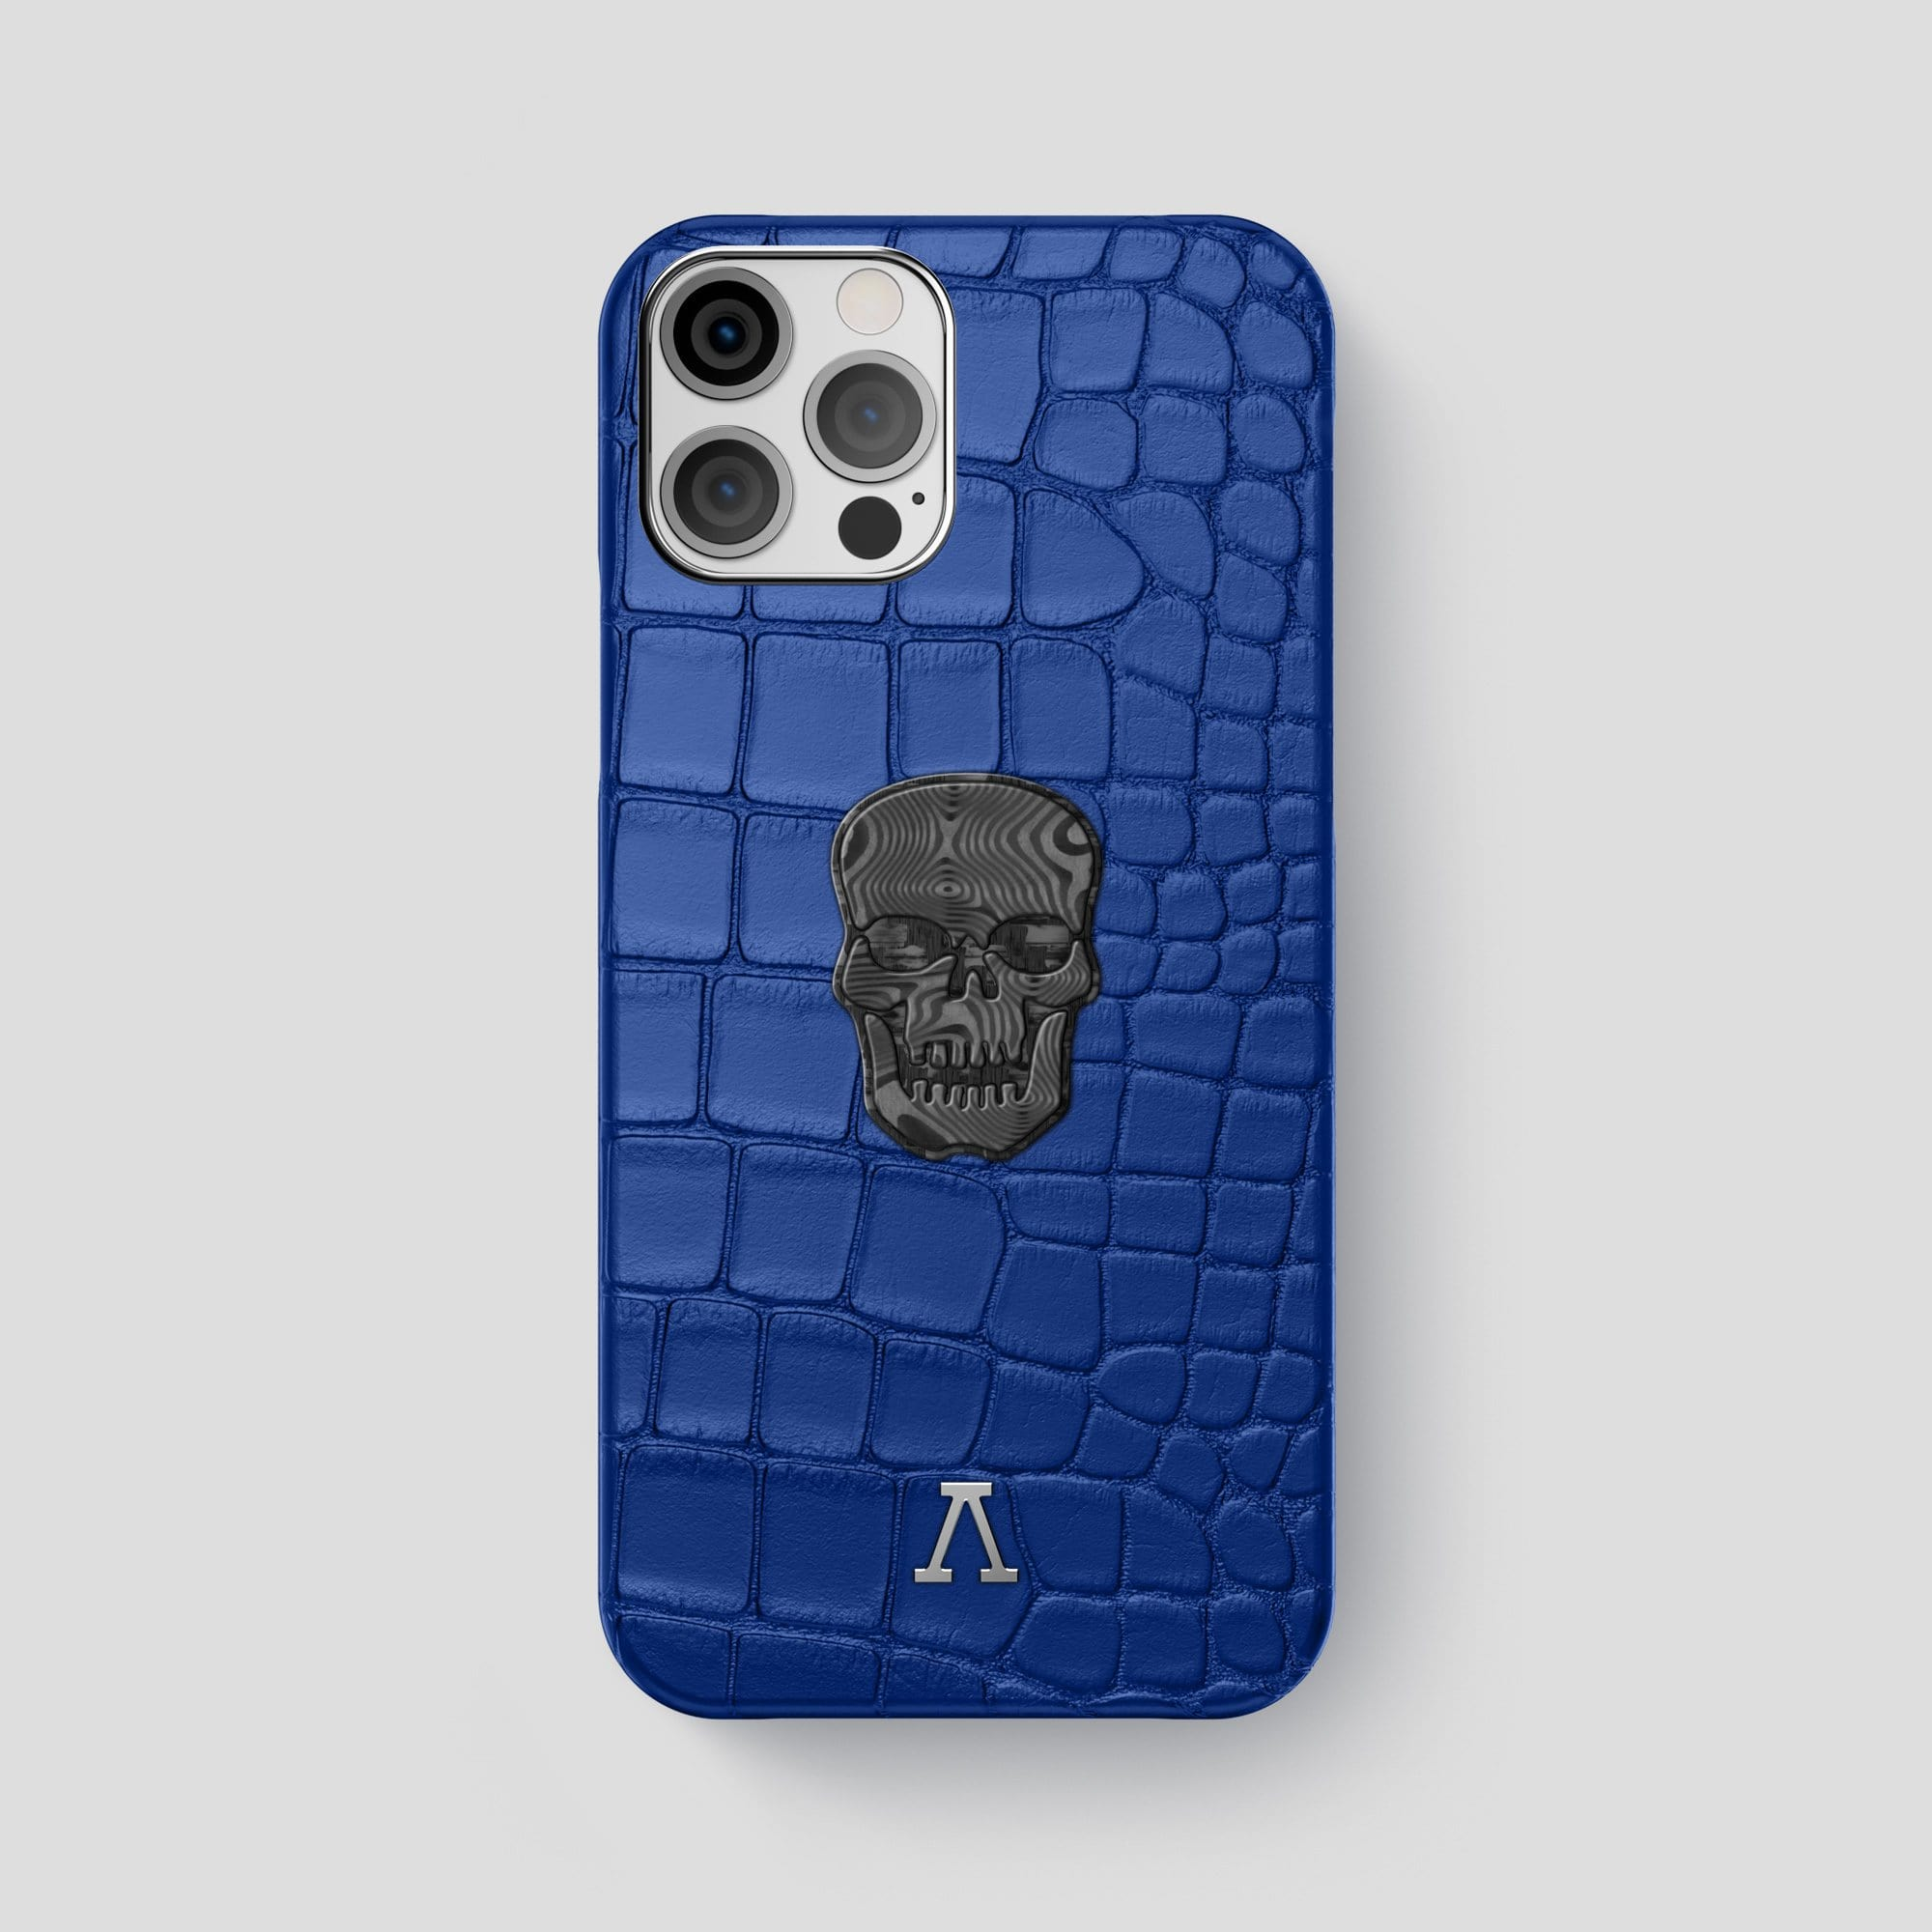 iPhone 12 Pro Max Classic Case Alligator with Carbon Skull